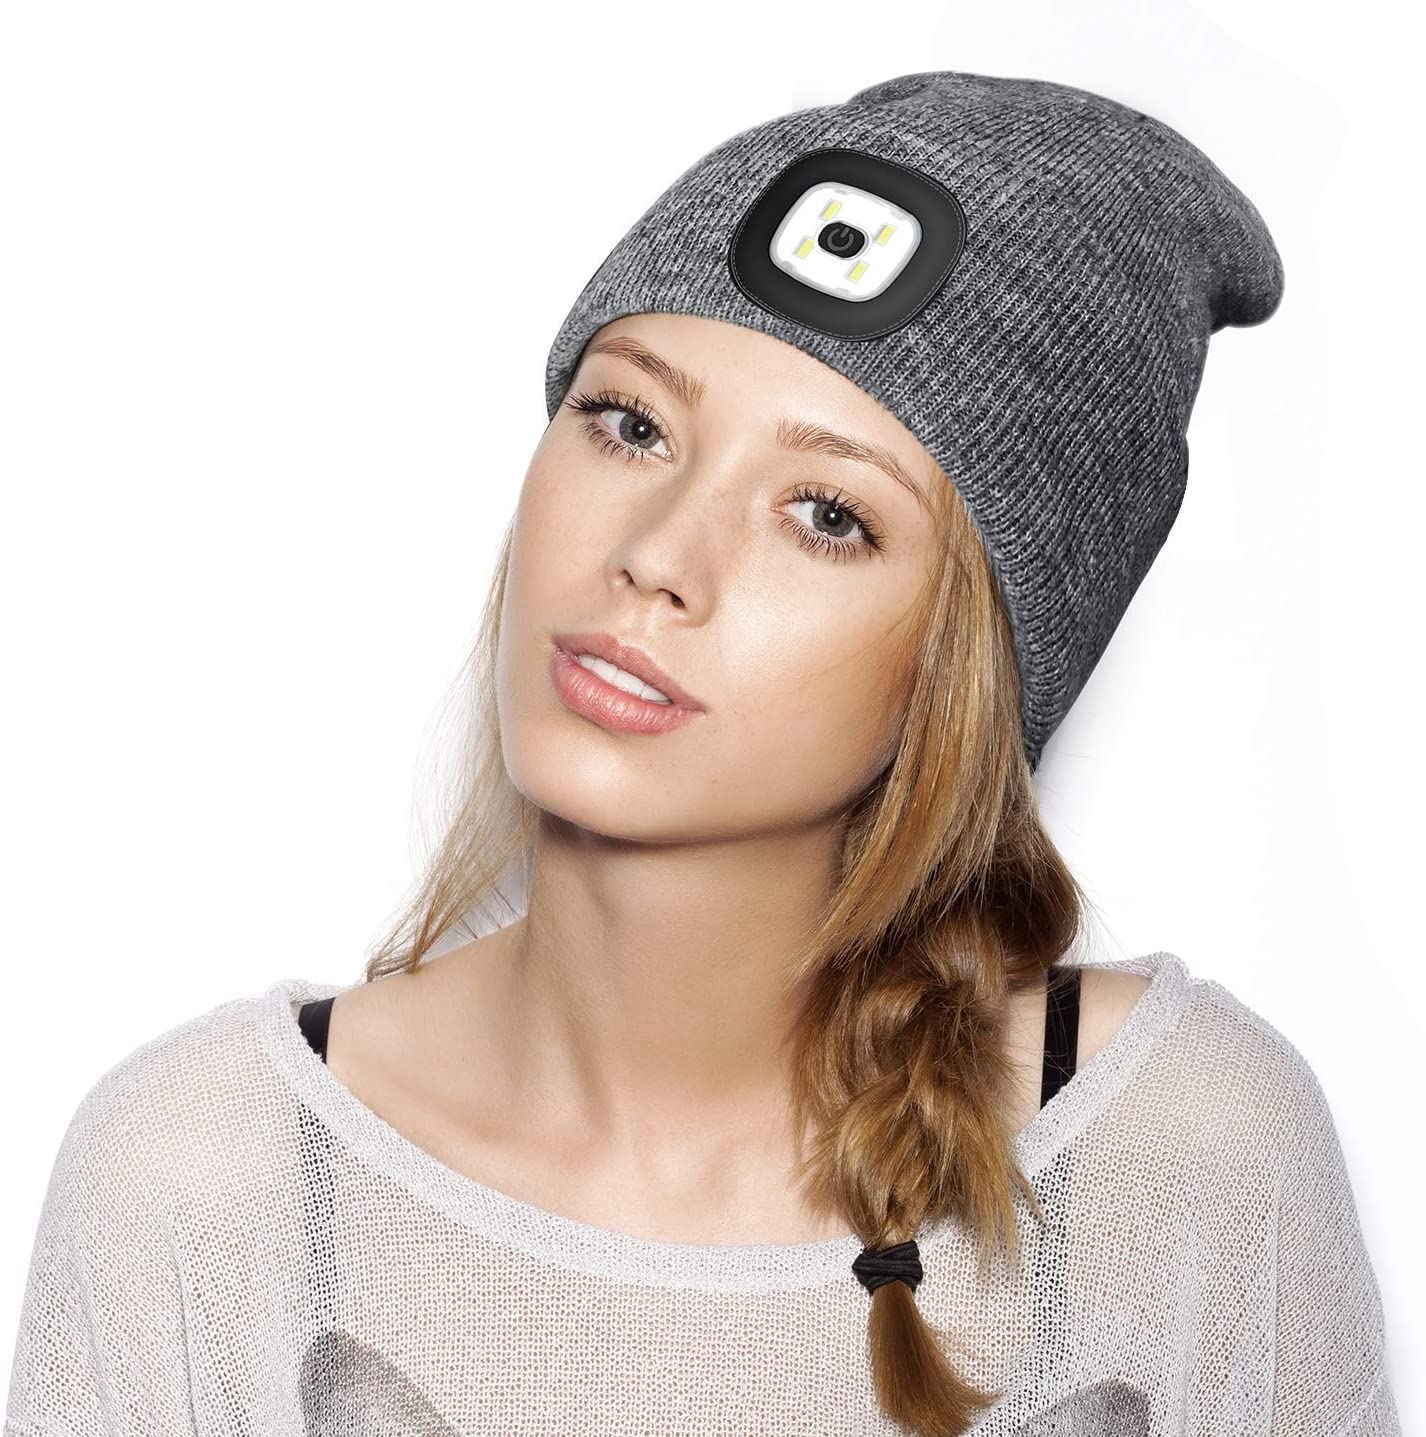 JIABAN LED USB Charging with Beanie to Use Outdoor Sports Hat Parts